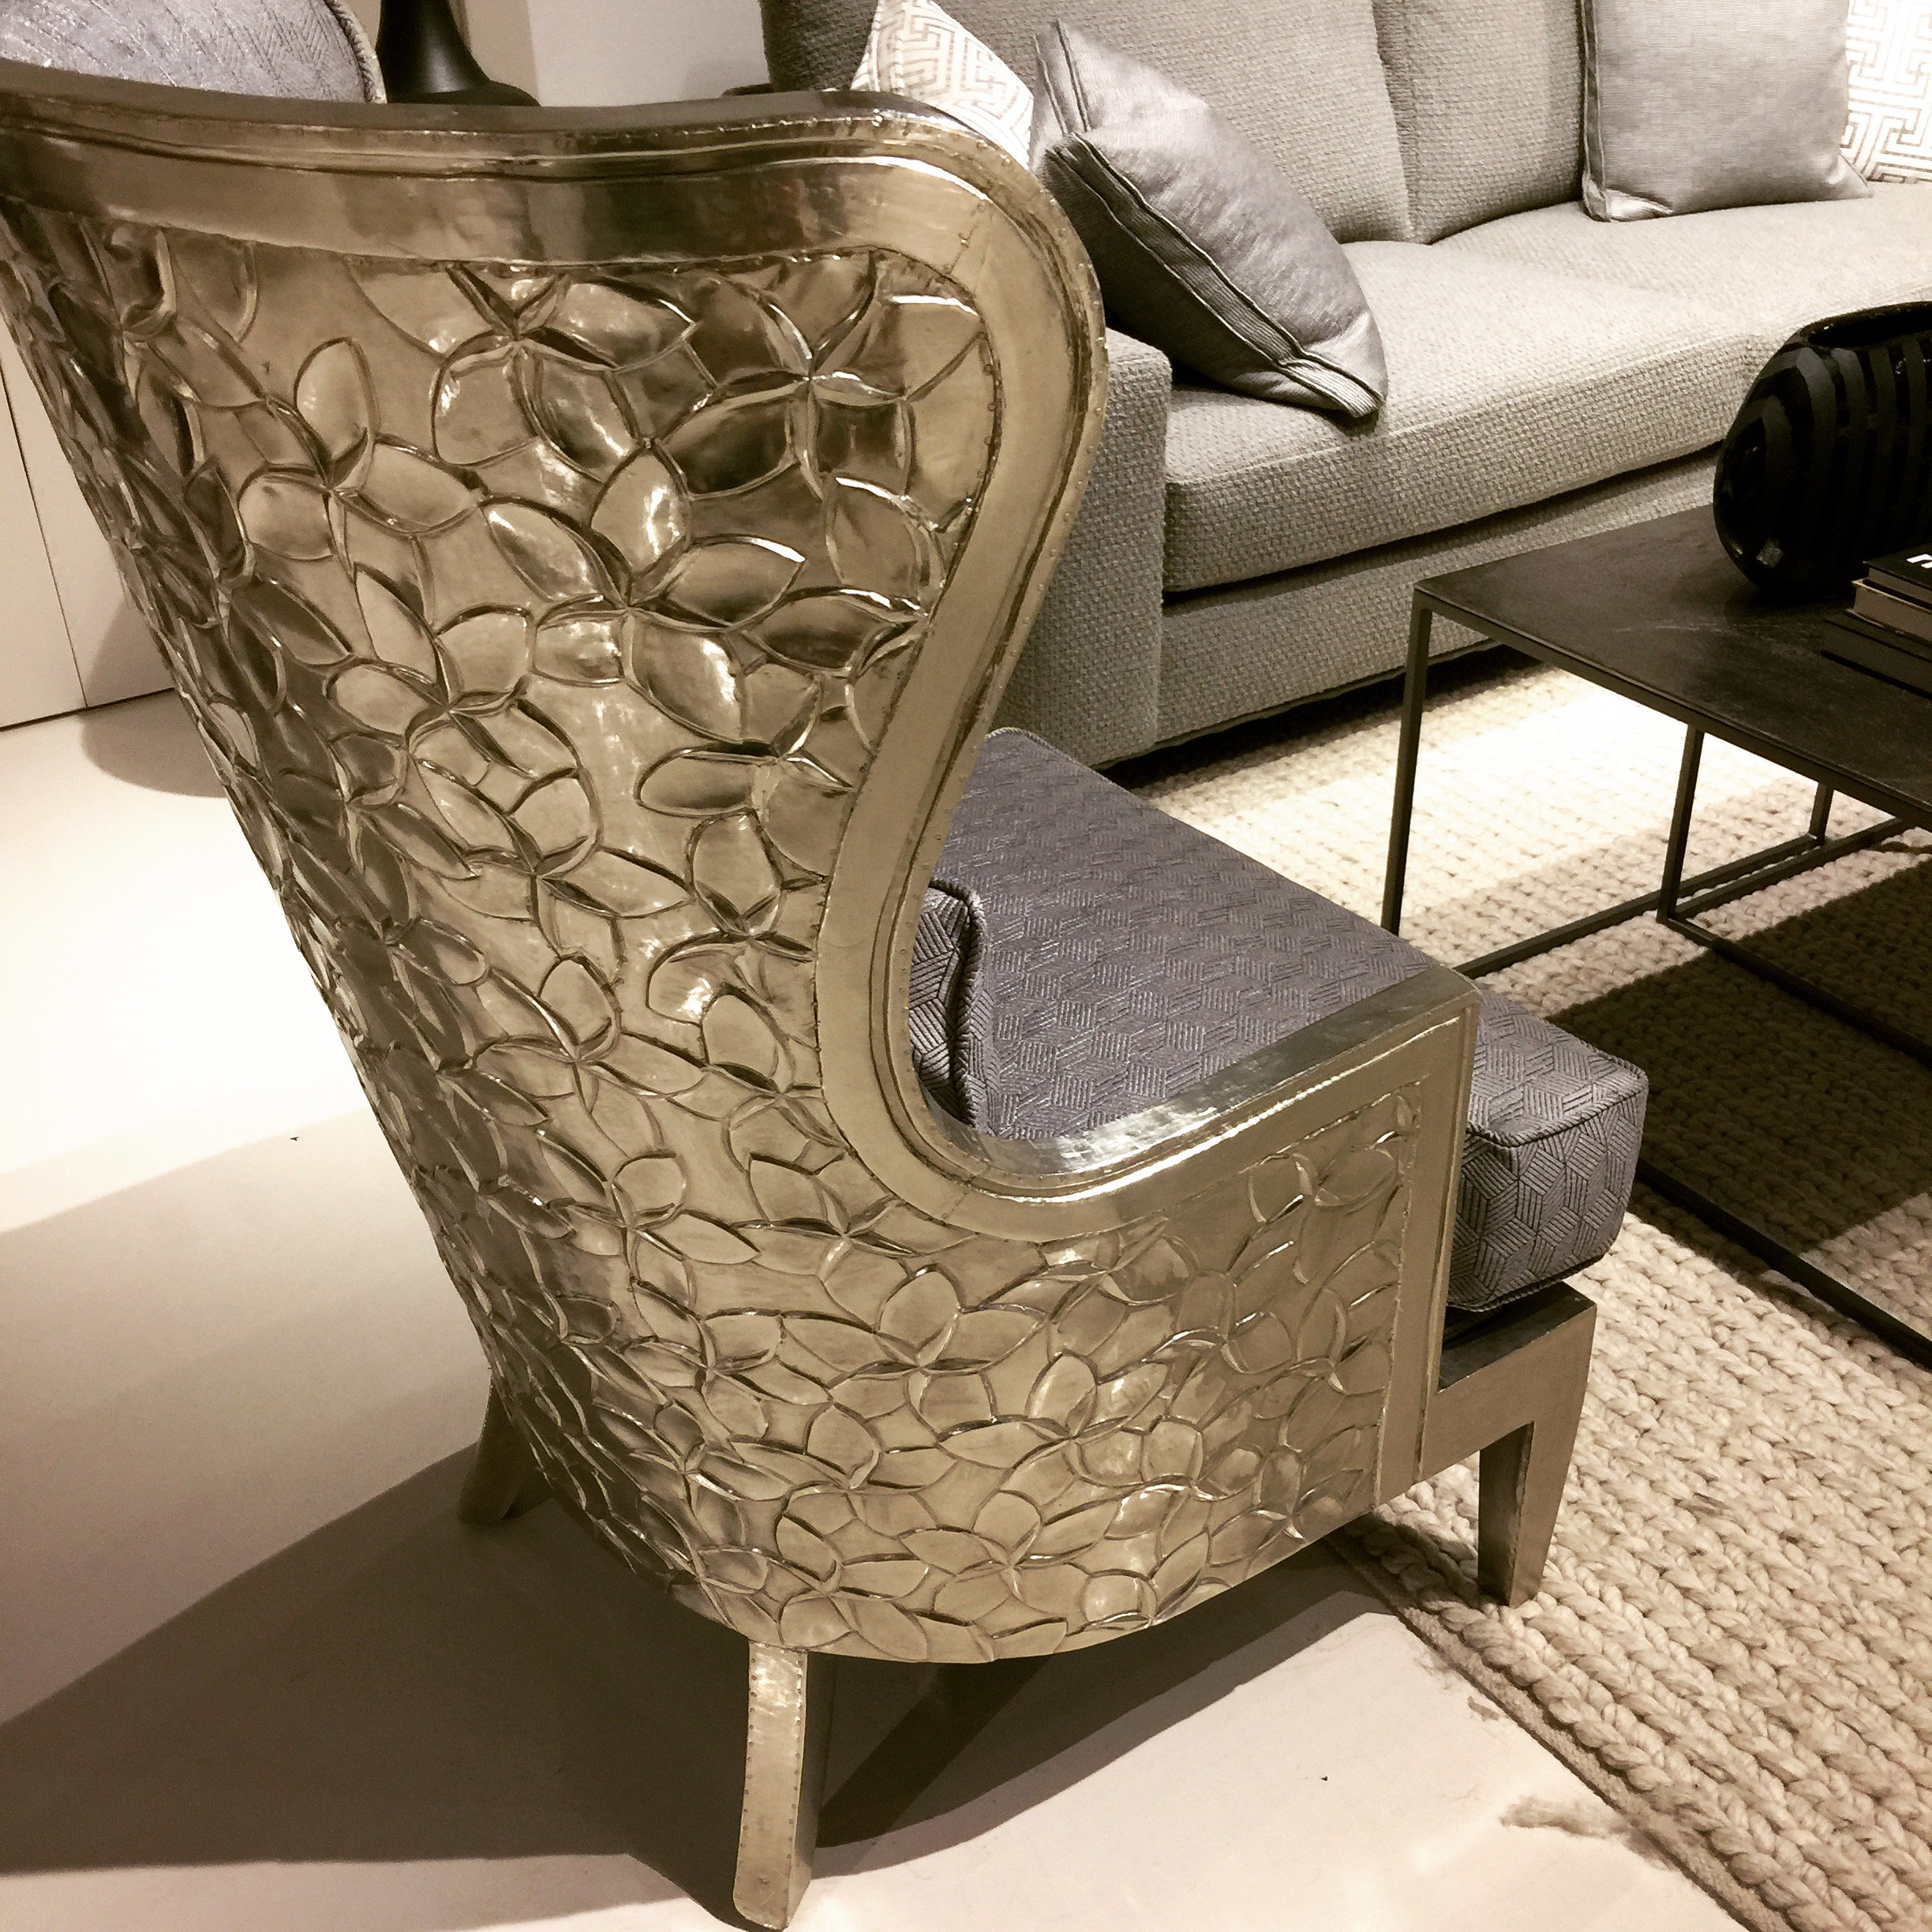 2017 HPMKT Highlights